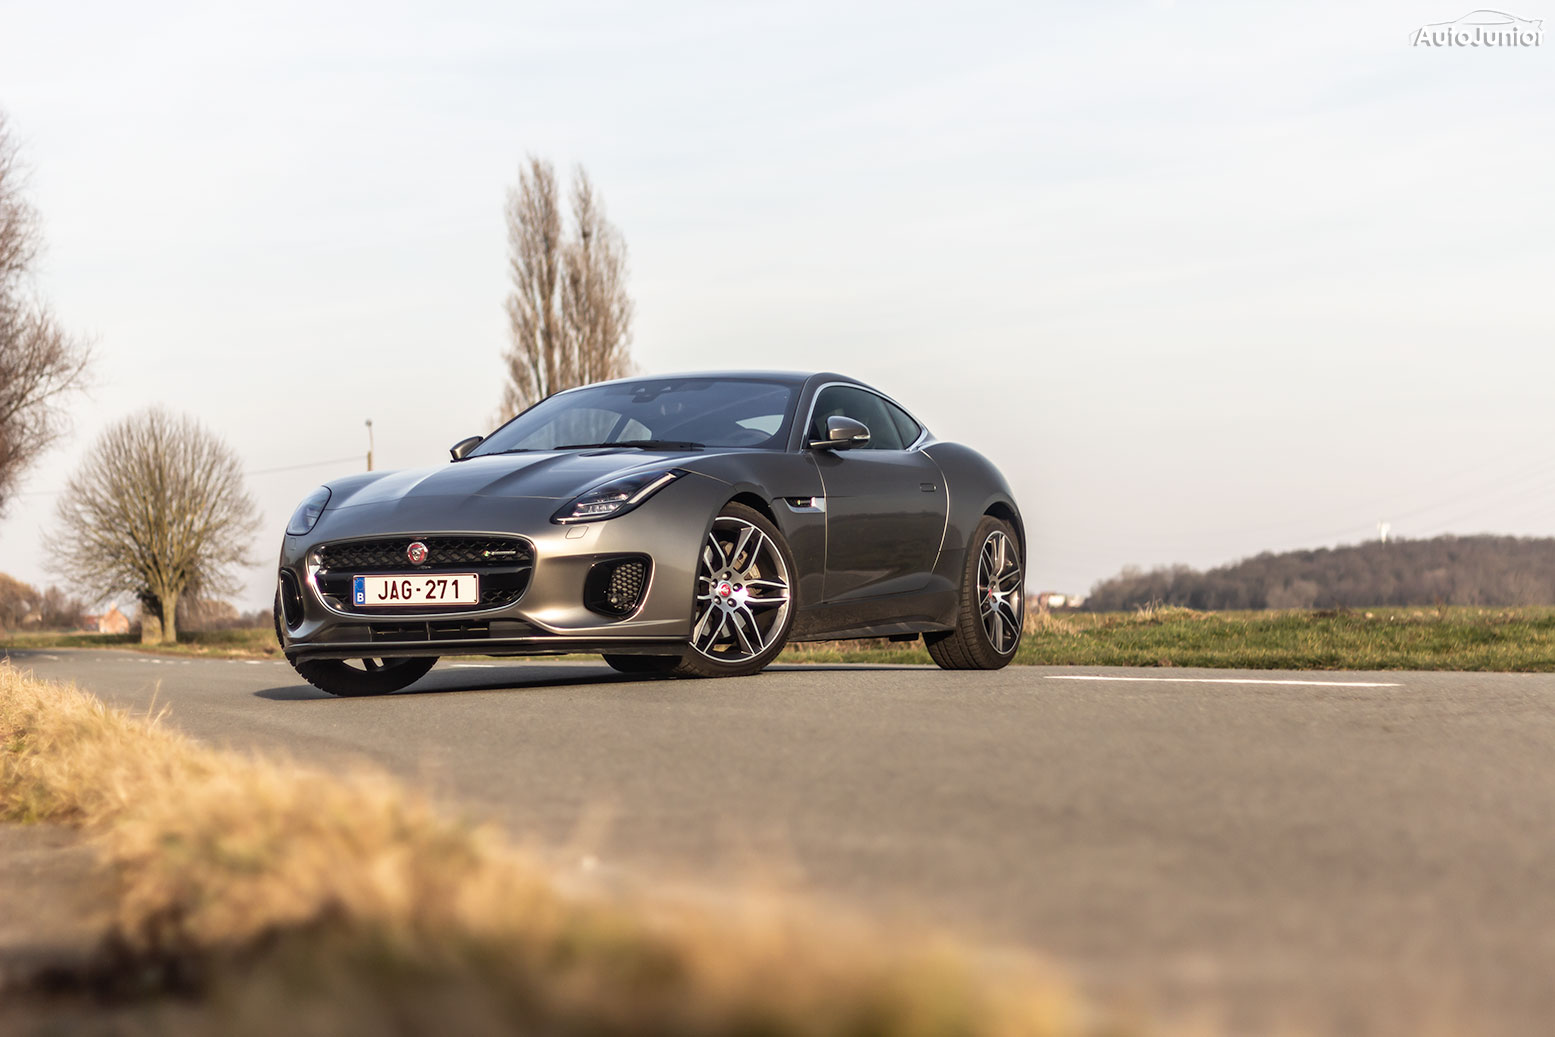 Rijtest: Jaguar F-type 2.0 RWD Coupé R-Dynamic